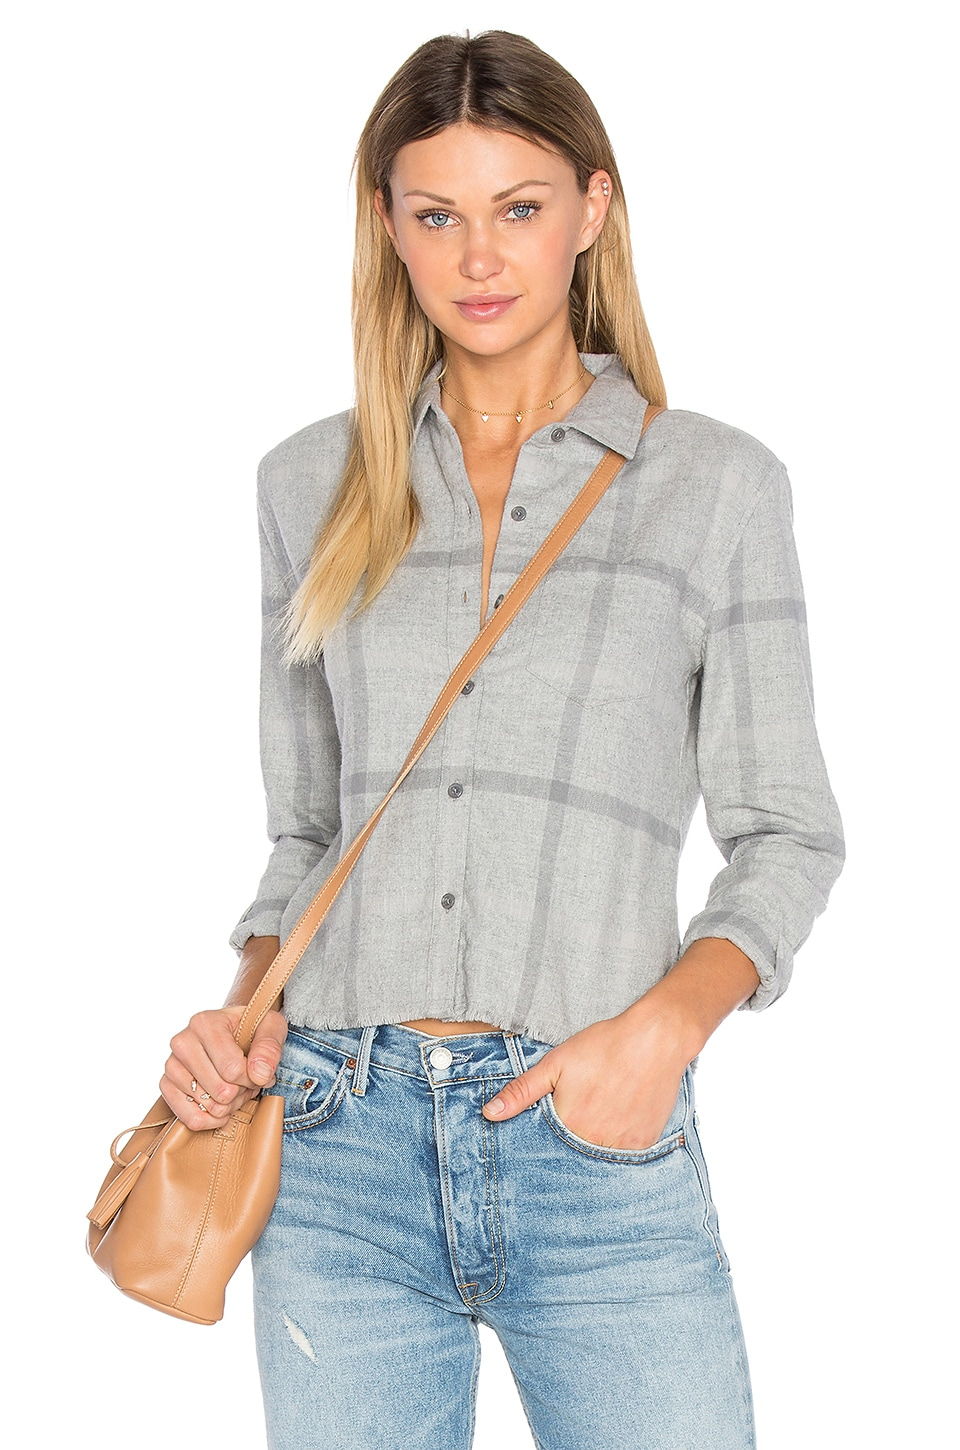 Joe's Jeans Carlie Crop Shirt in Heather Grey